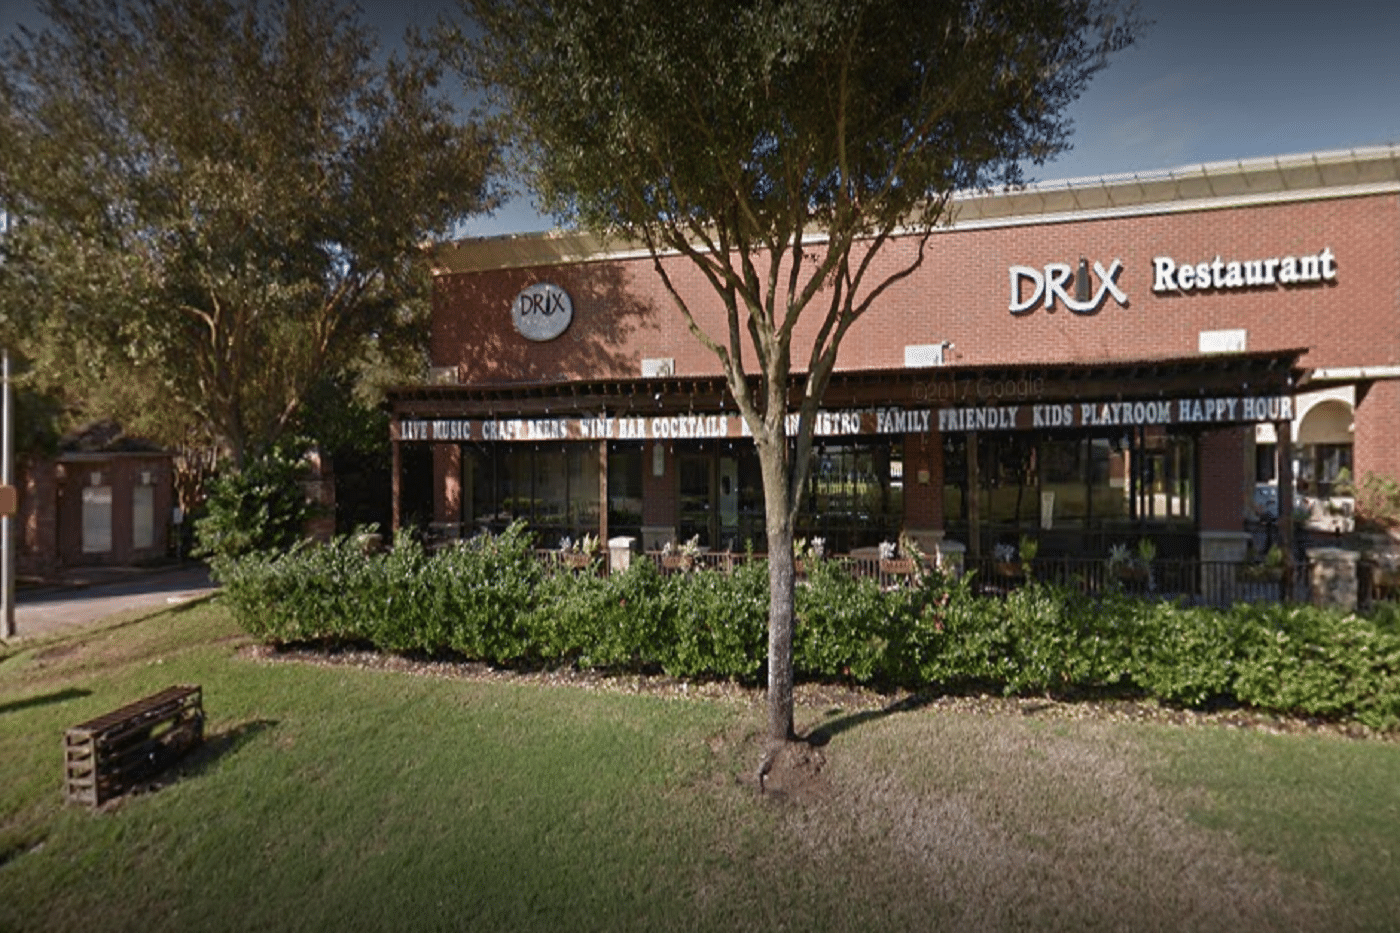 Drix Restaurant and Lounge, 1850 S Mason Rd, Katy, TX 77450